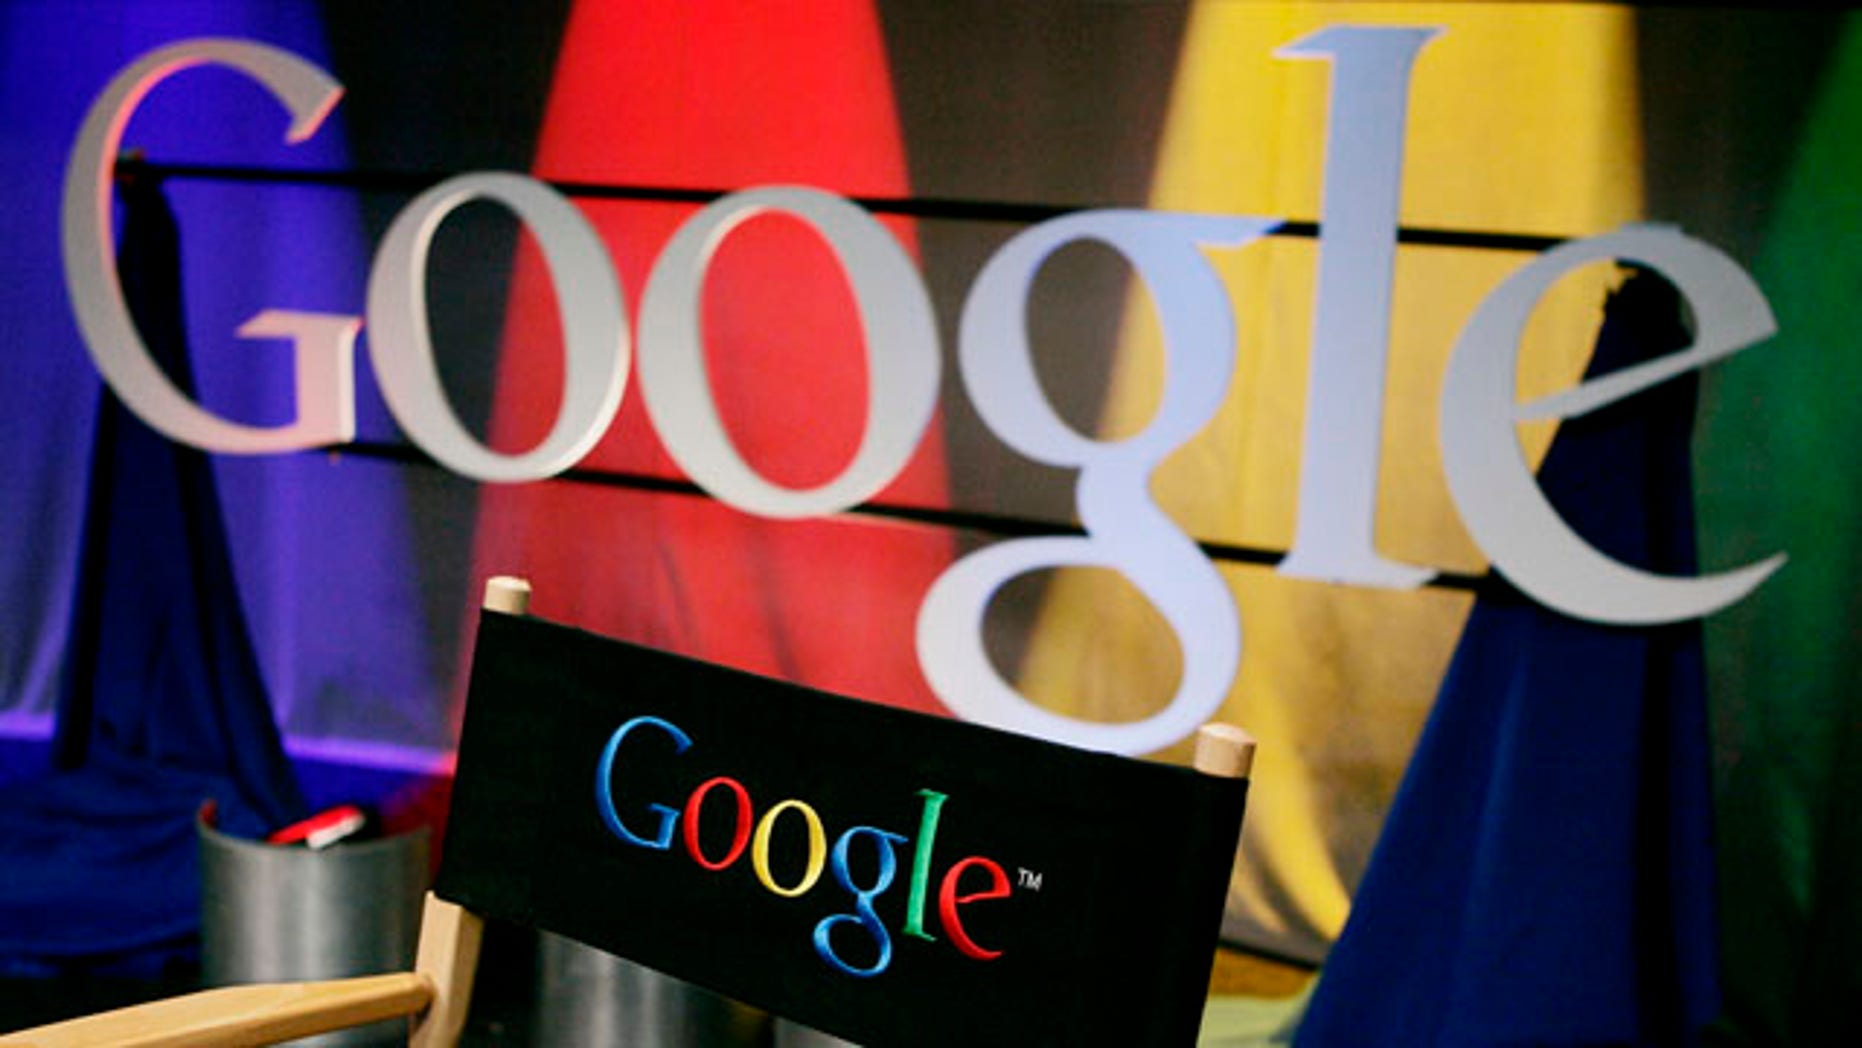 A Google sign inside Google headquarters in Mountain View, Calif. A Paris court has convicted the company in a copyright infringement case over online publication of French books.